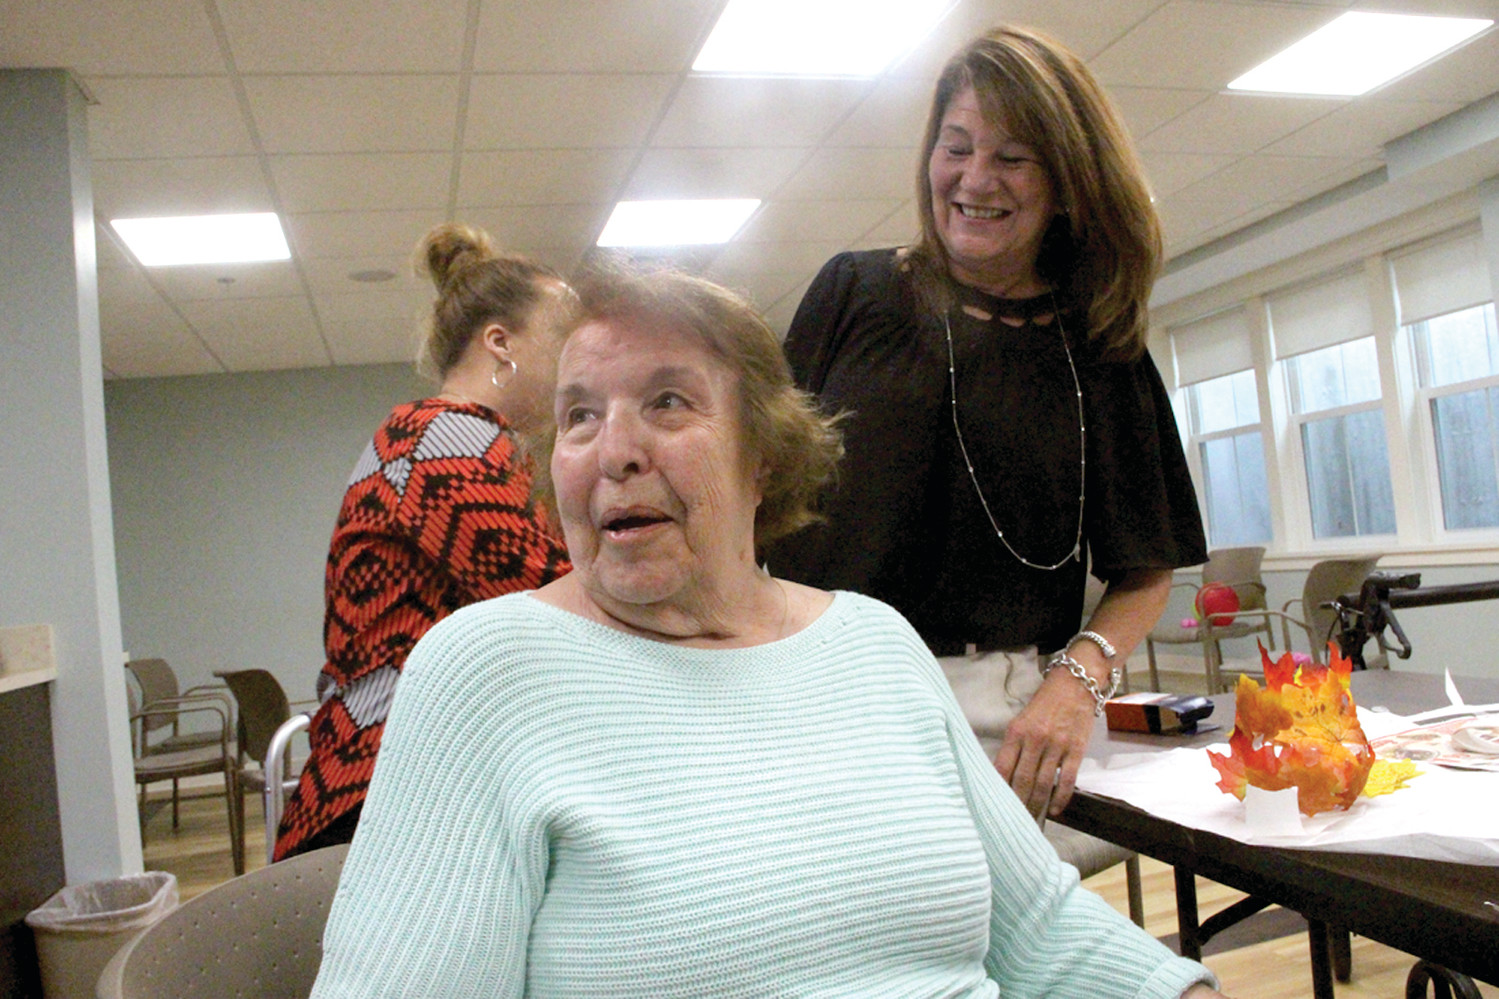 LOVES THE PEOPLE: Rose Johnson takes a break from a crafts project to join in the conversation. Looking on is Maureen McGhie, director of nurses at Brentwood Nursing Home.